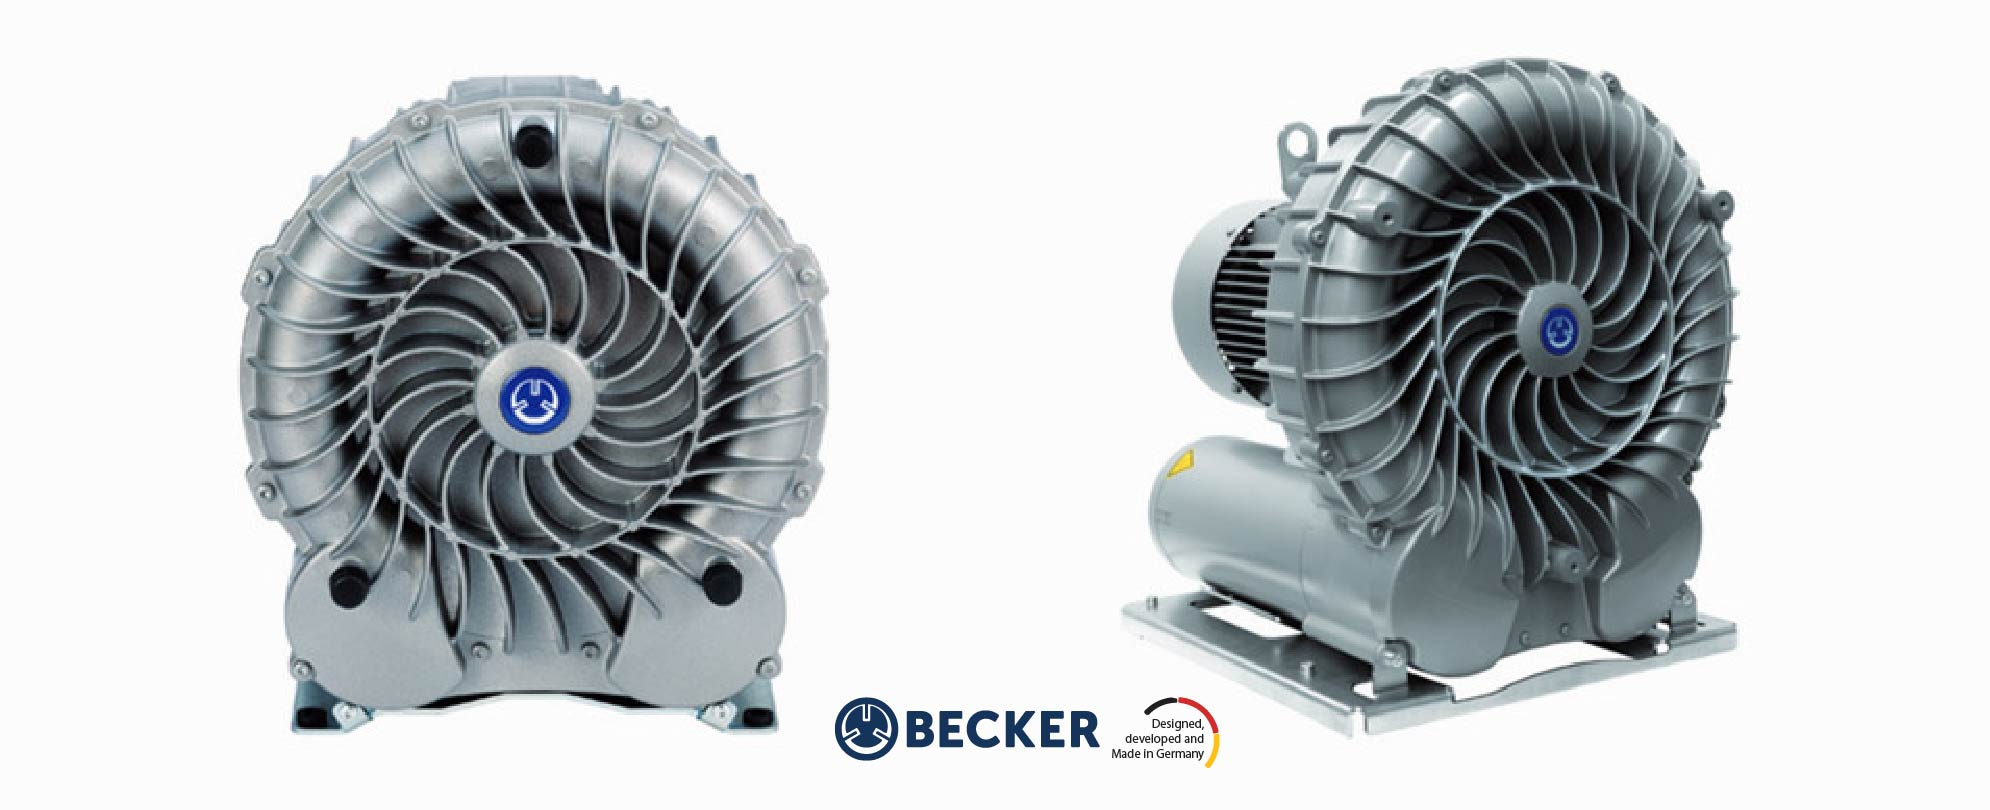 Becker SV 200:1 Blower Bomba de canal lateral